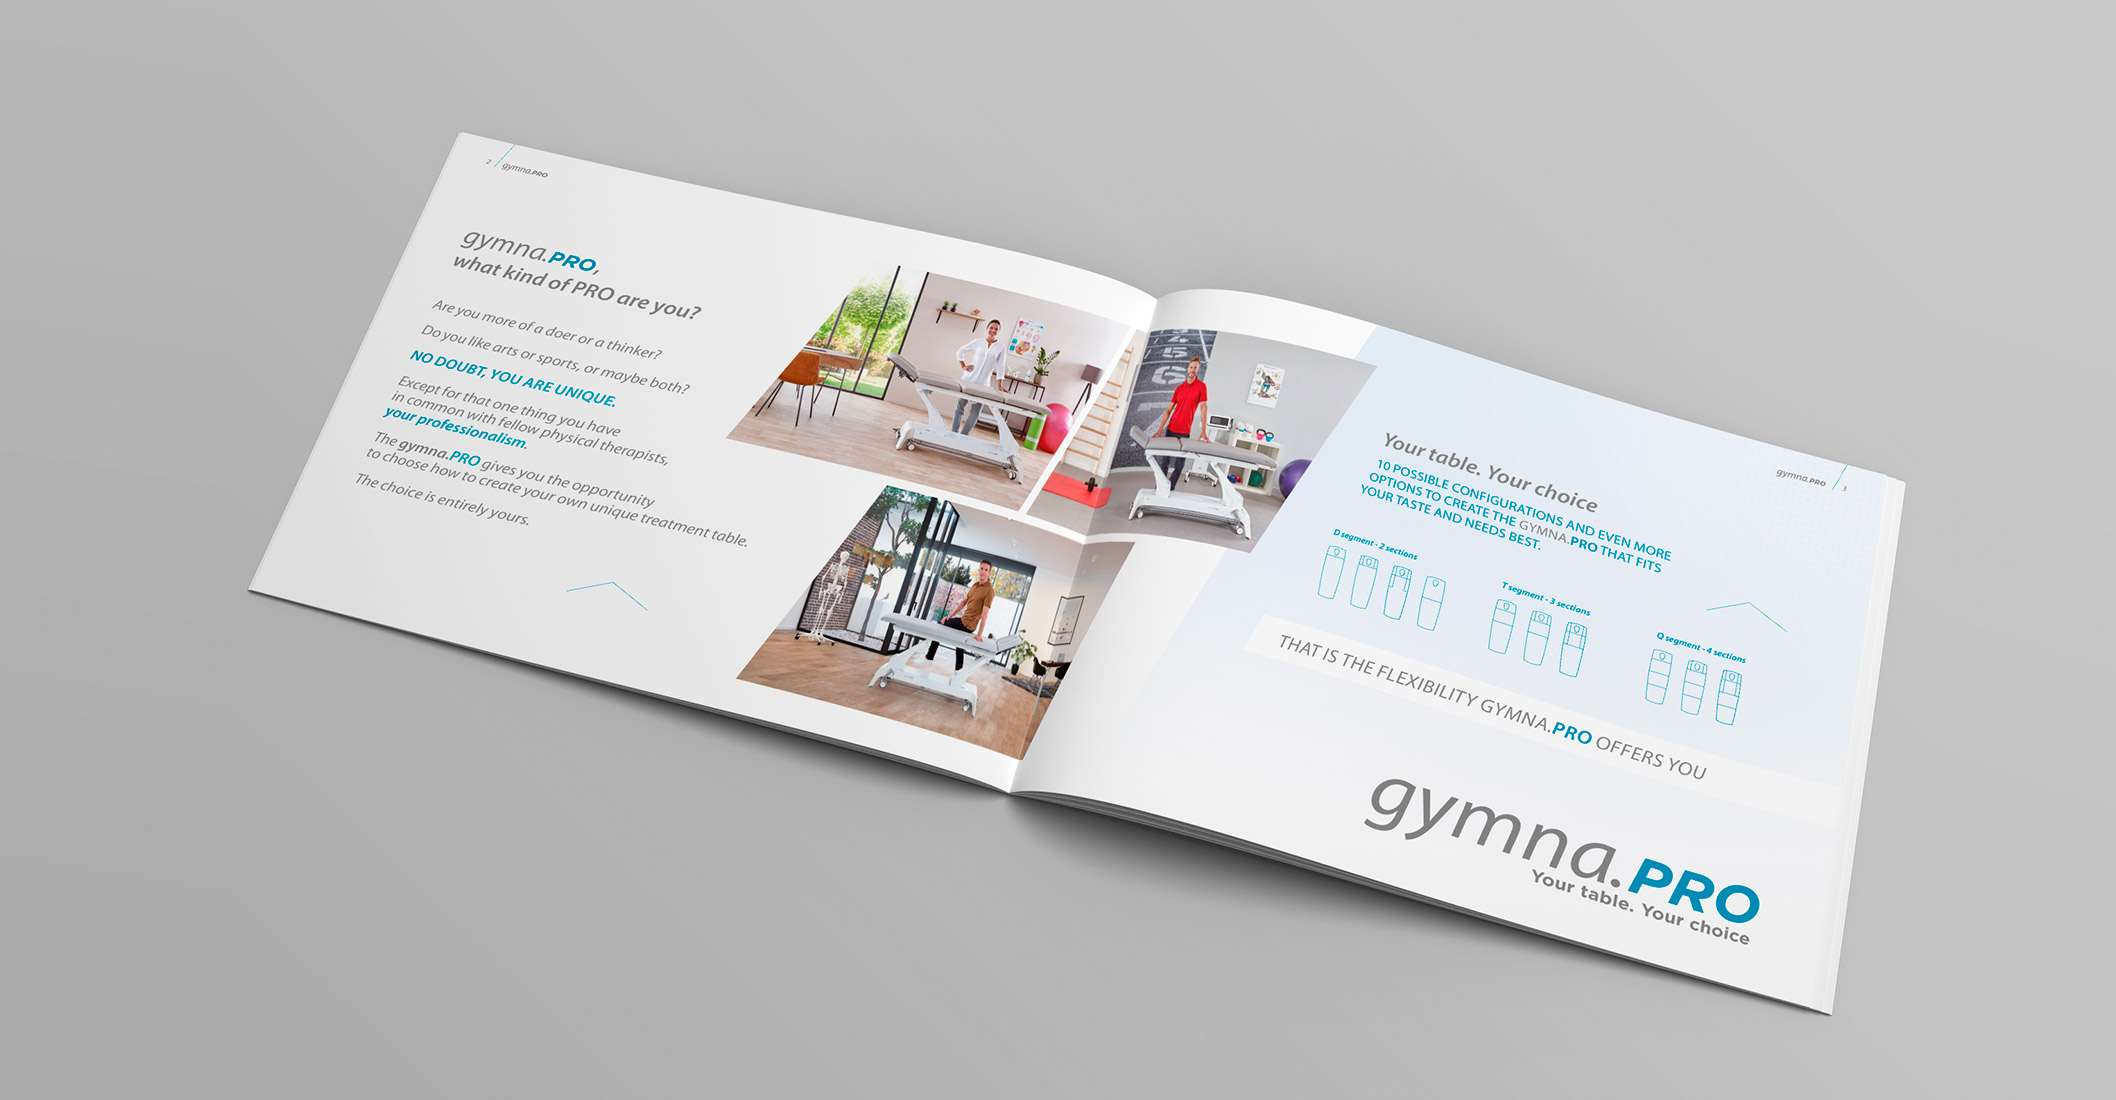 Layout of the brochure